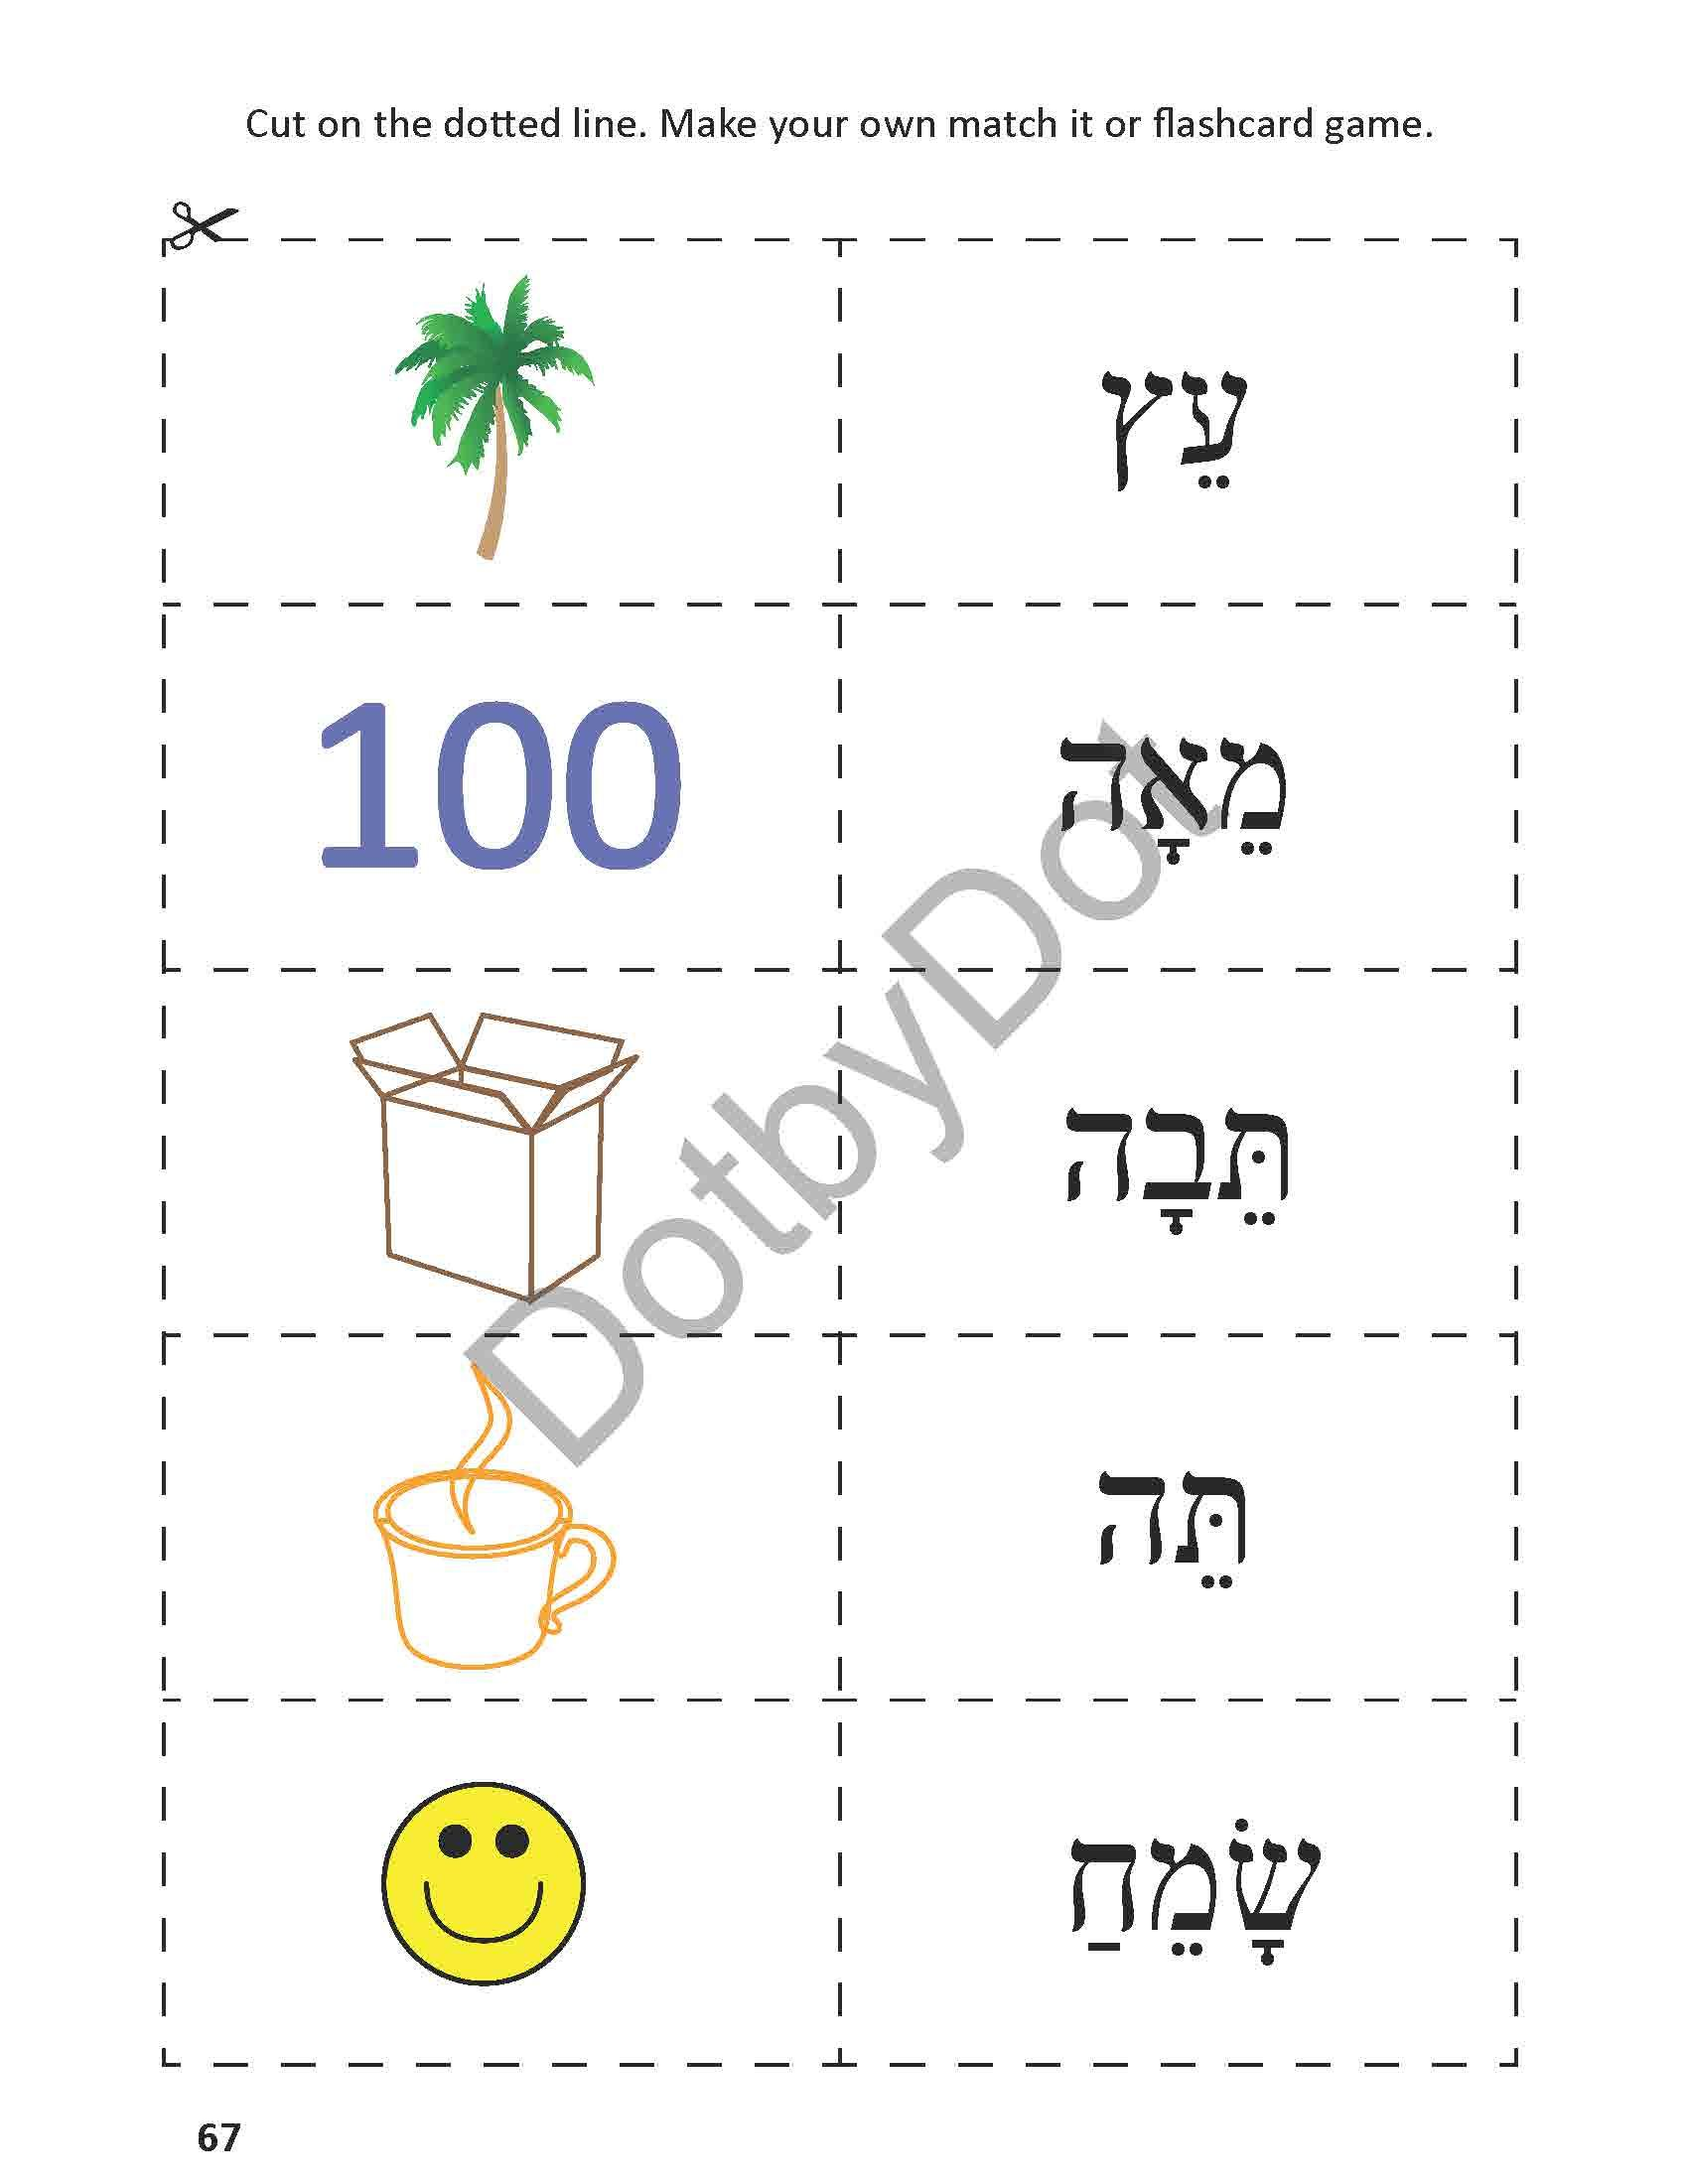 DotbyDot workbook activity page. Hebrew word flashcard